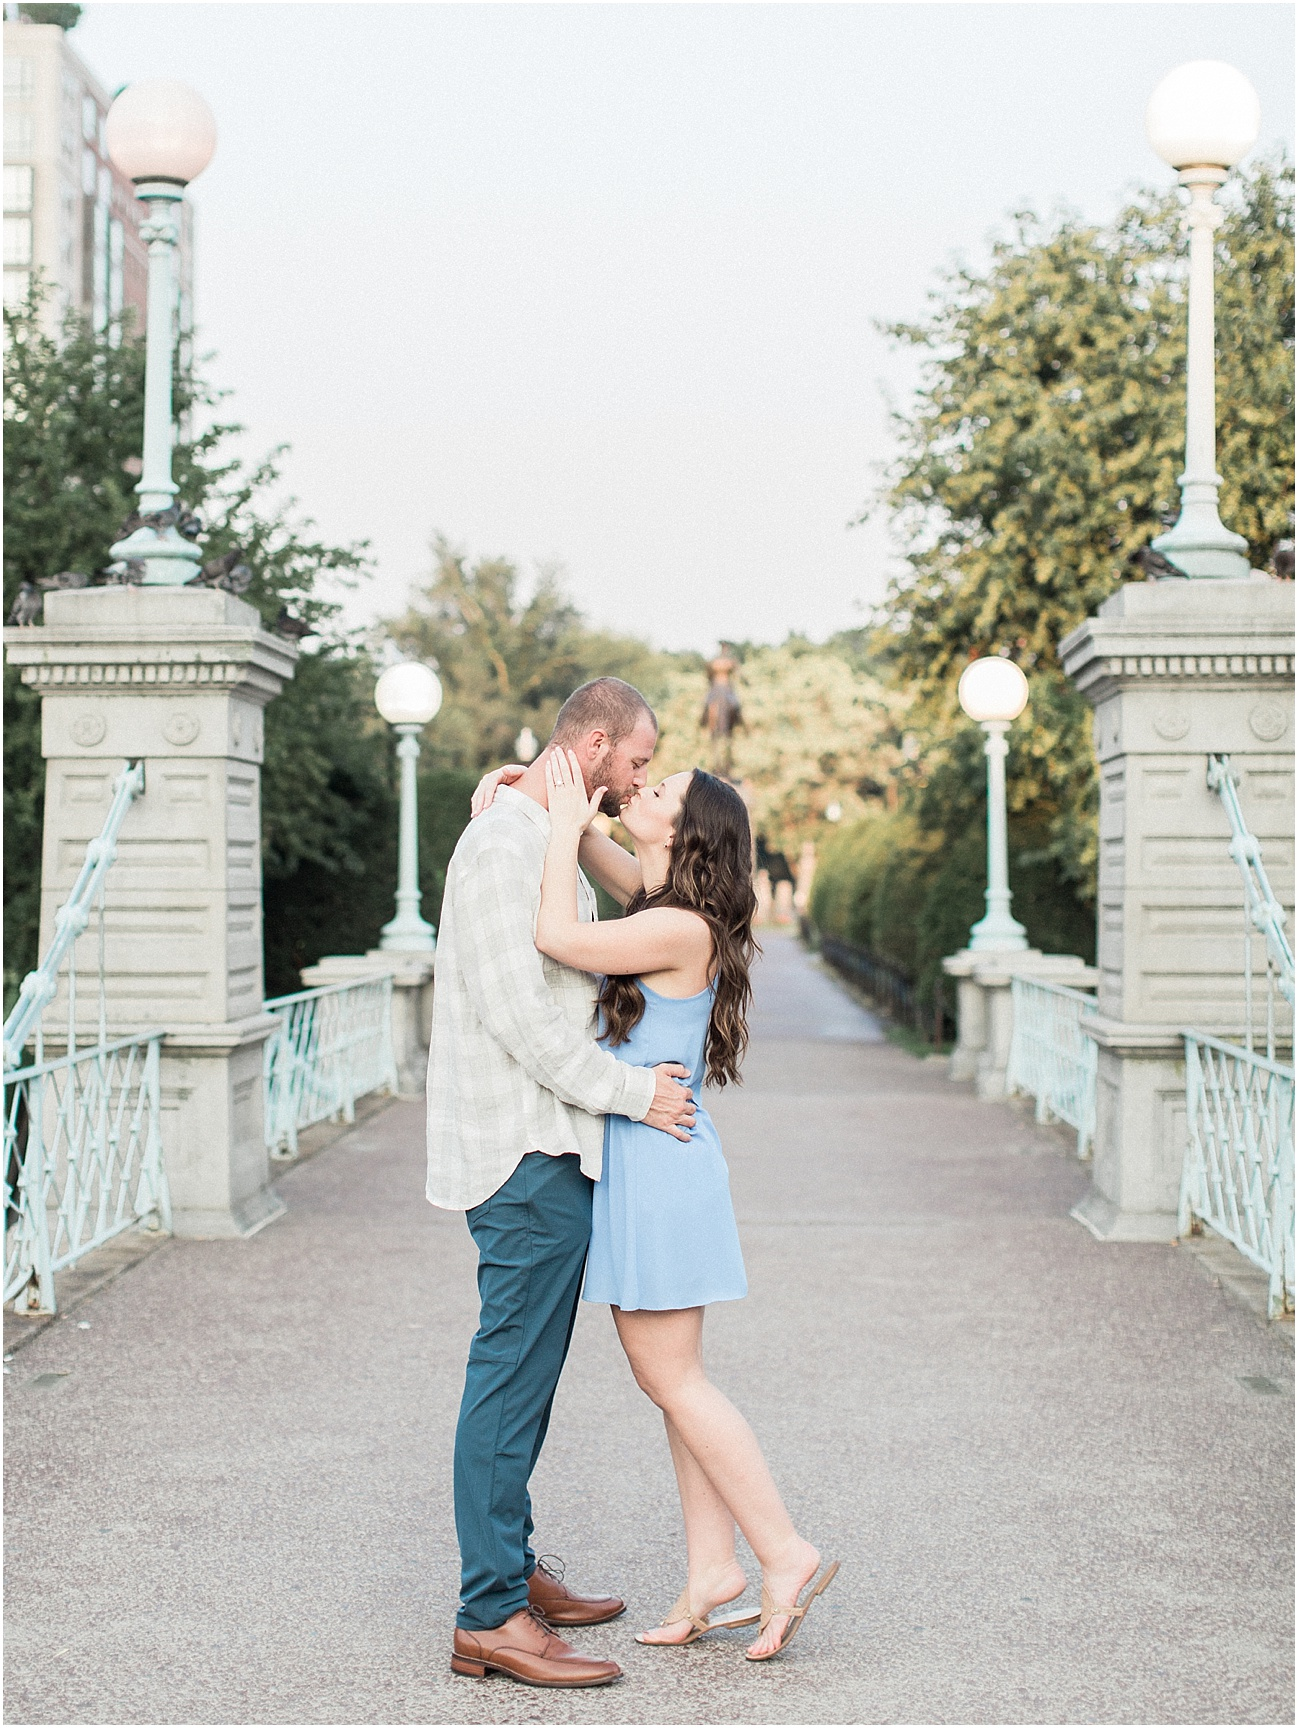 christina_frank_common_engagement_acorn_street_back_bay_cape_cod_boston_wedding_photographer_meredith_jane_photography_photo_0715.jpg